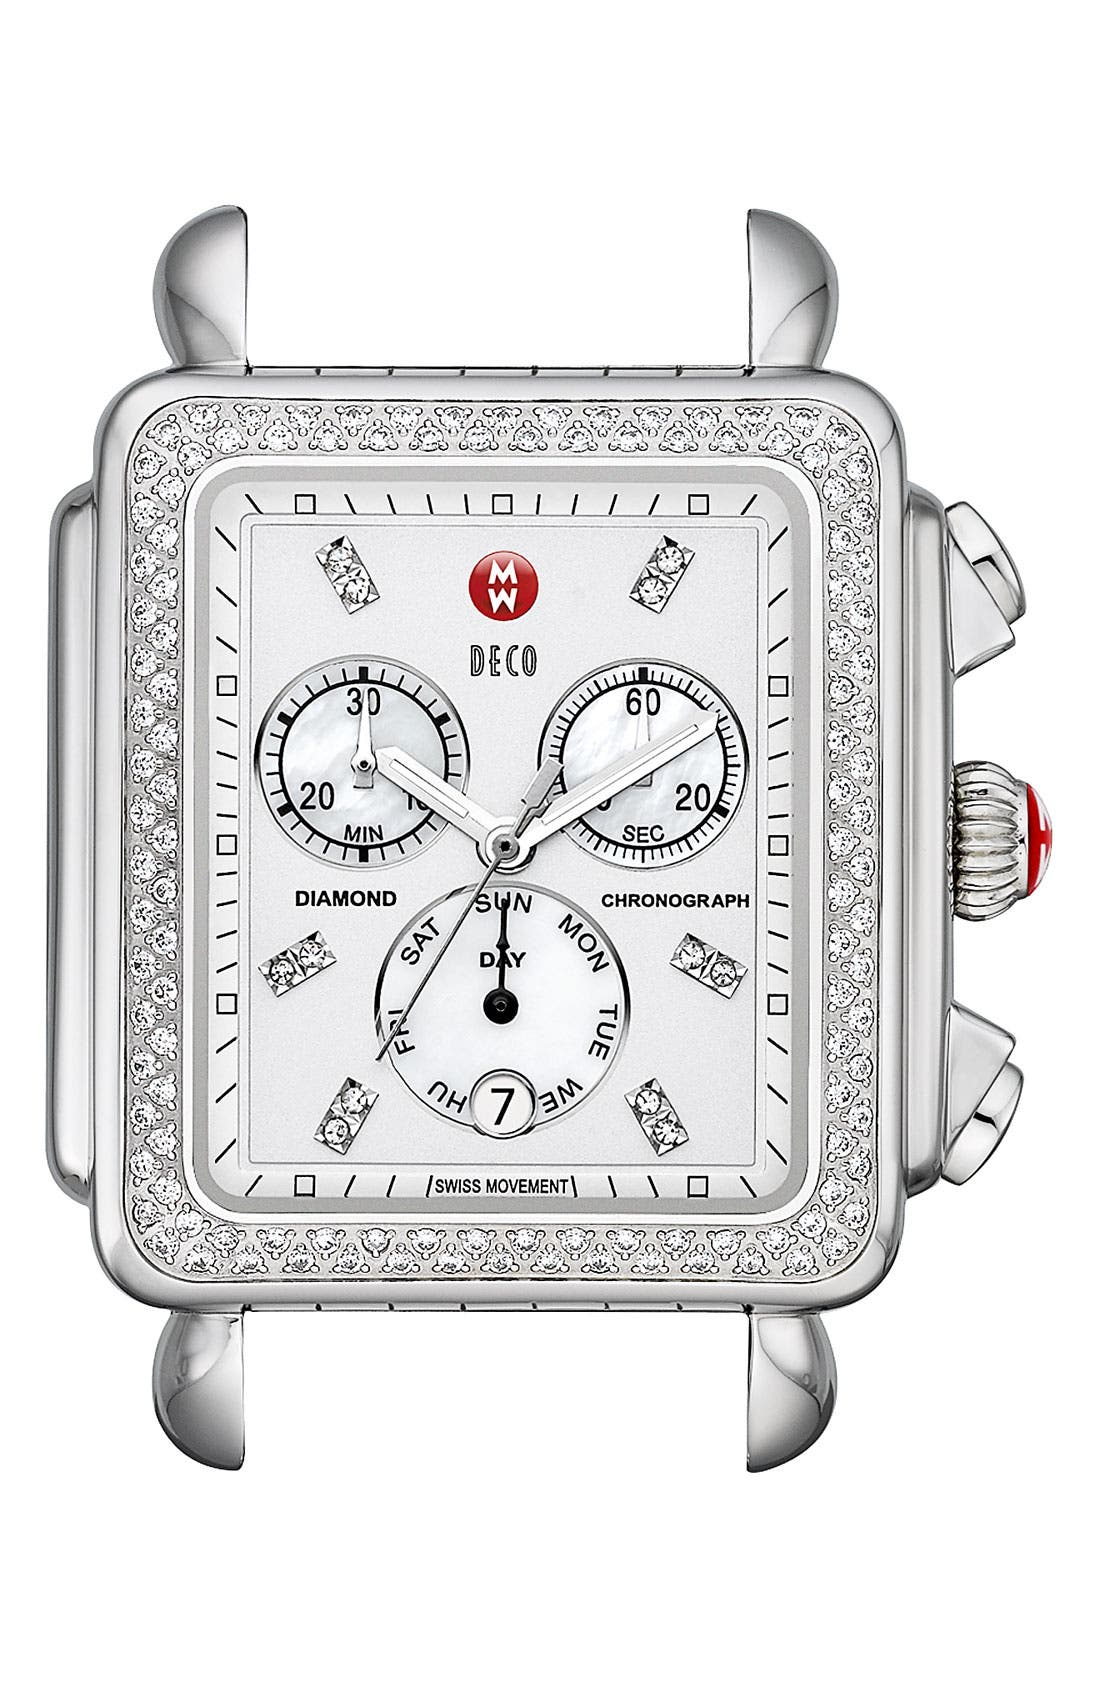 Alternate Image 1 Selected - MICHELE 'Deco XL Diamond' Diamond Dial Watch Case, 37mm x 38mm